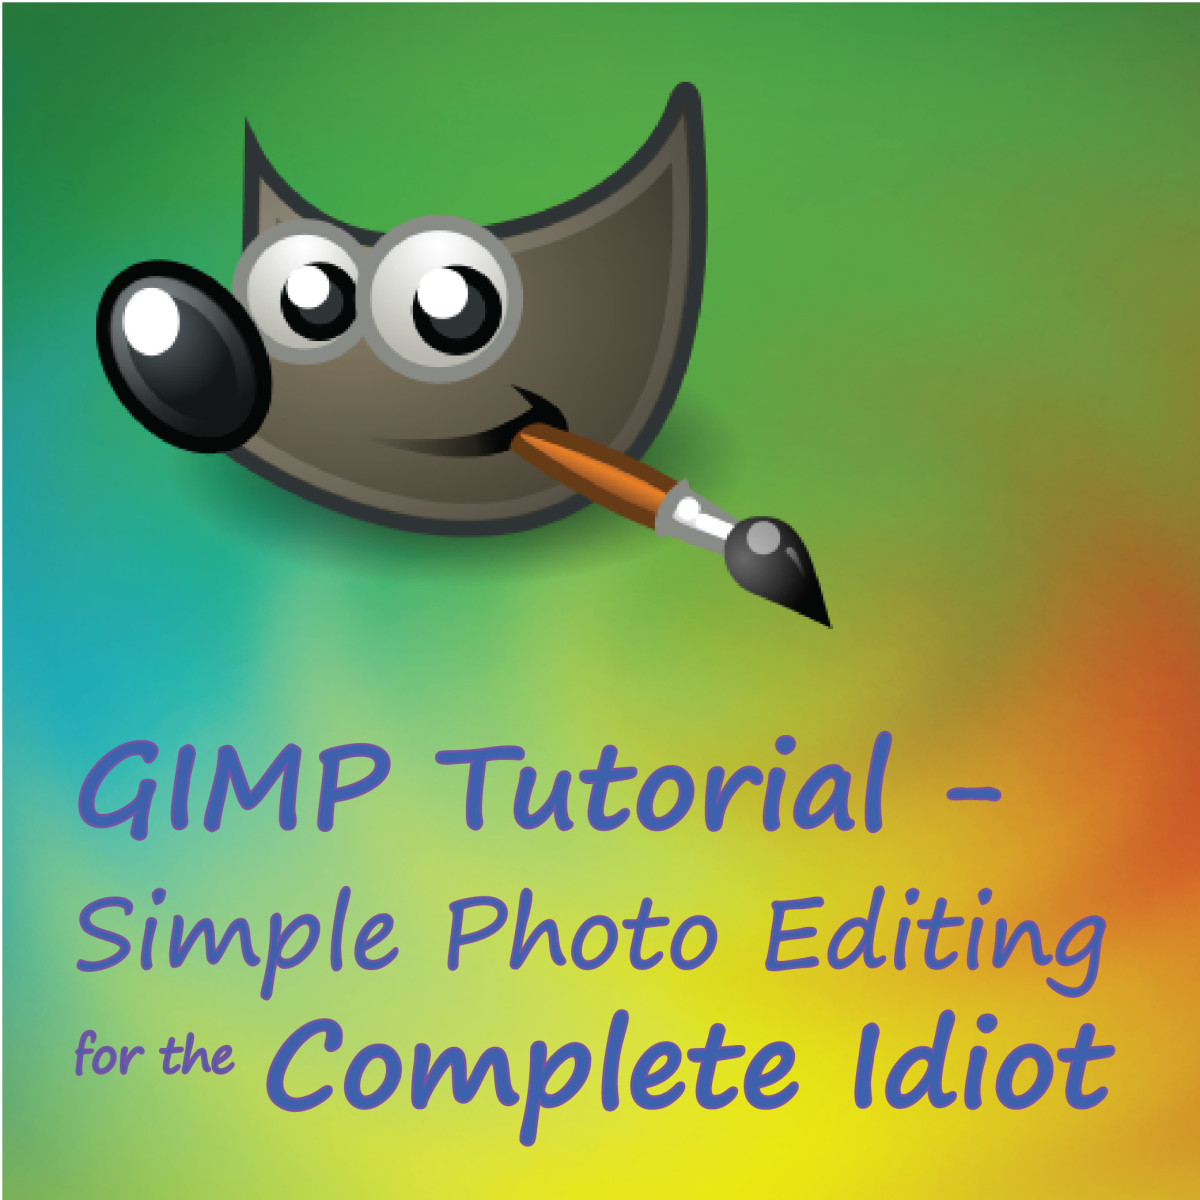 GIMP Tutorial: Simple Photo Editing for the Complete Idiot